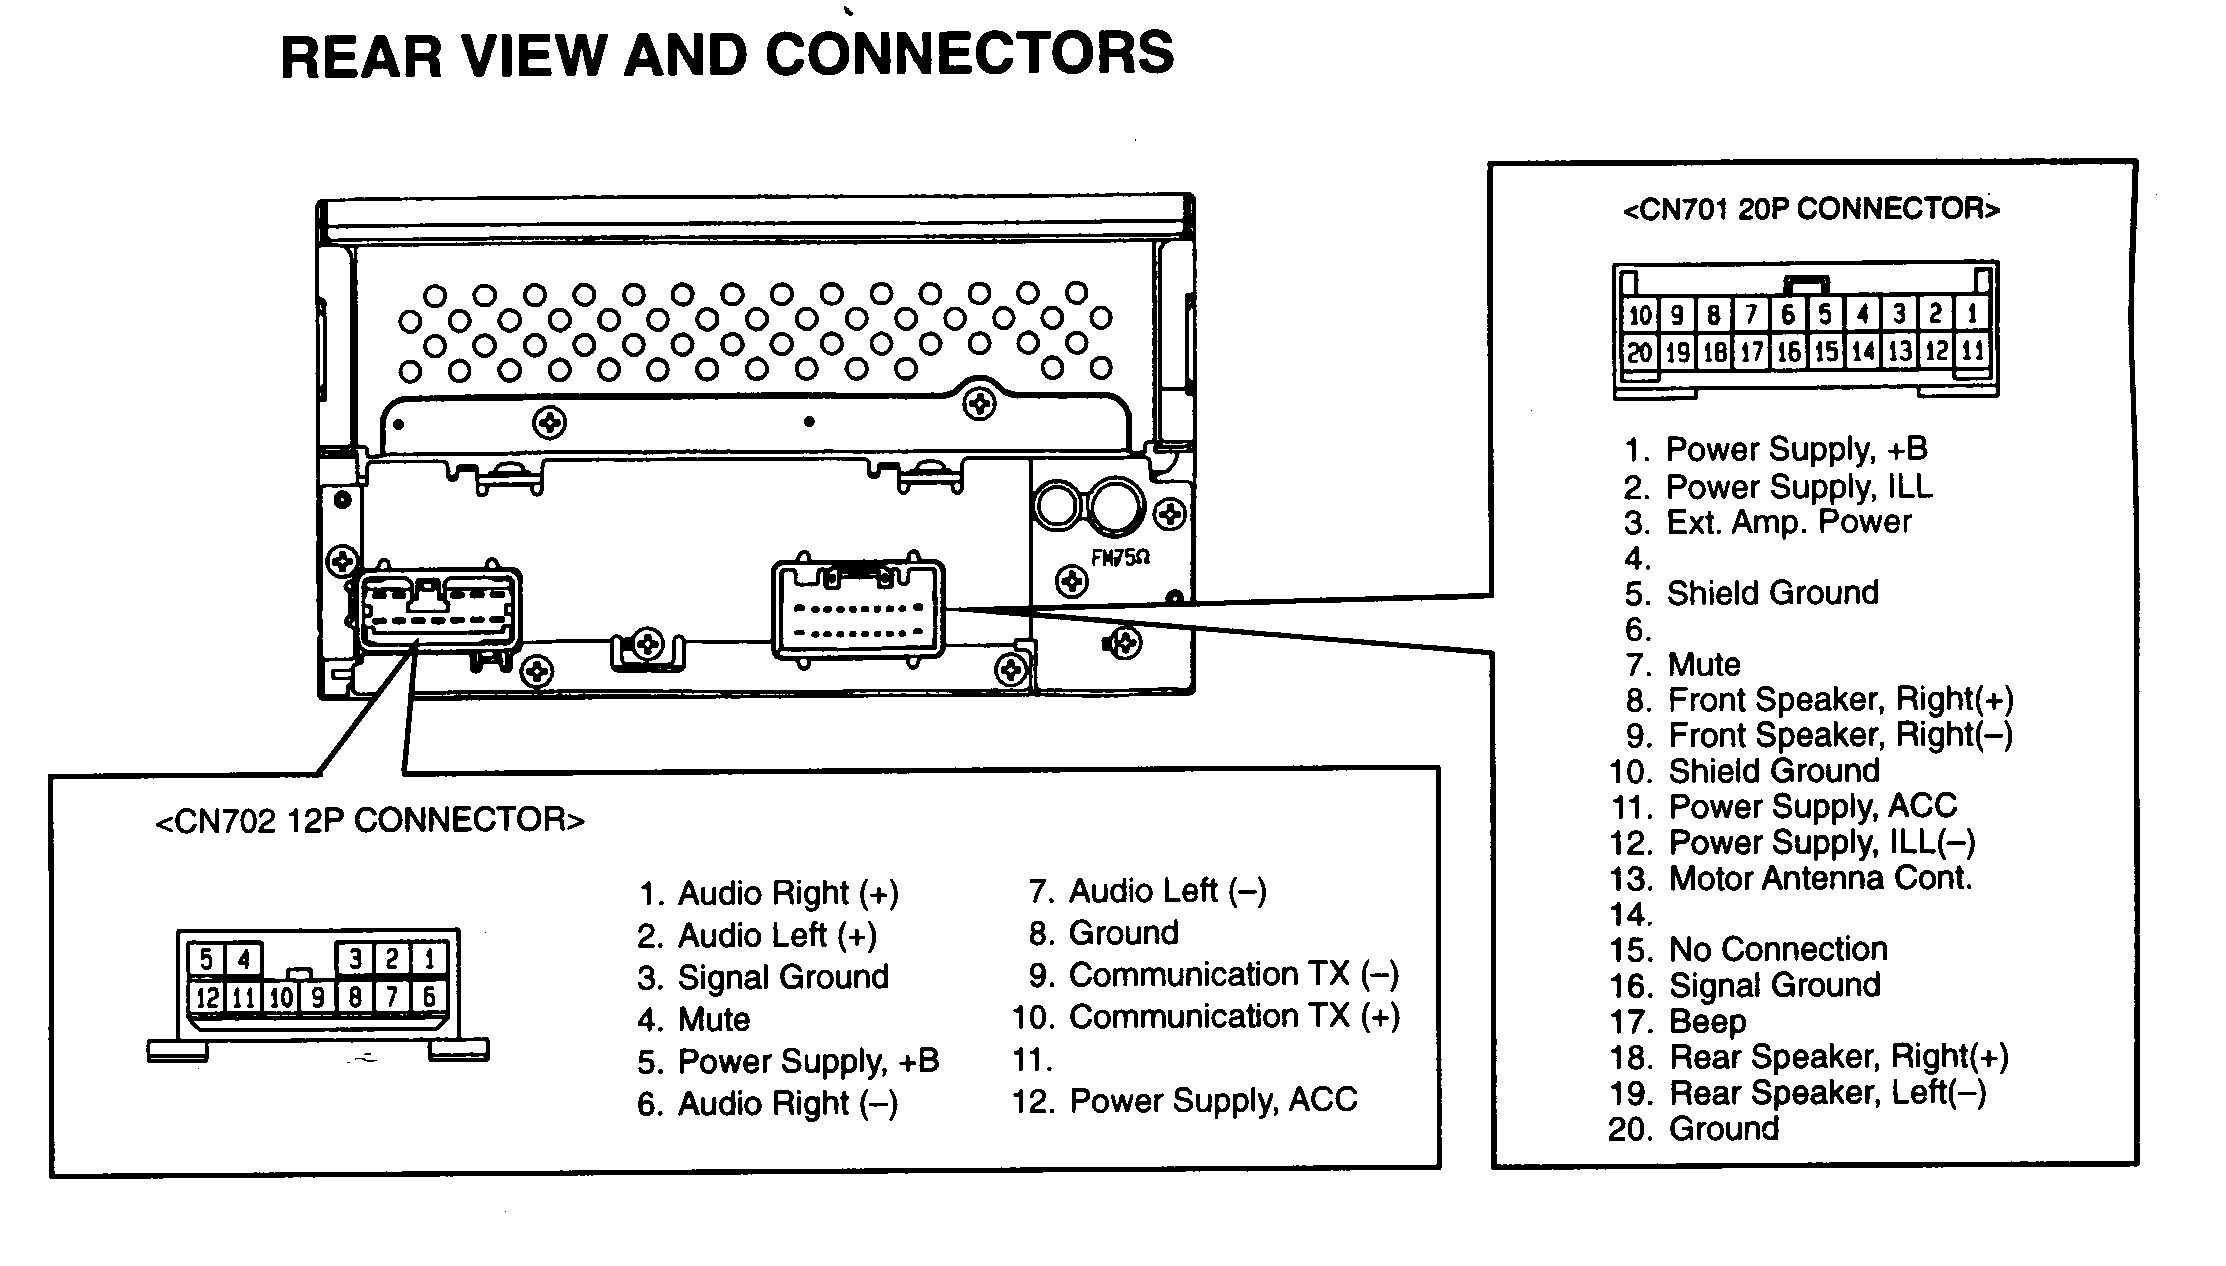 1998 toyota Camry Engine Diagram A Amp E 82 toyota Corolla Wiring Diagram Wiring Schematic Diagram Of 1998 toyota Camry Engine Diagram